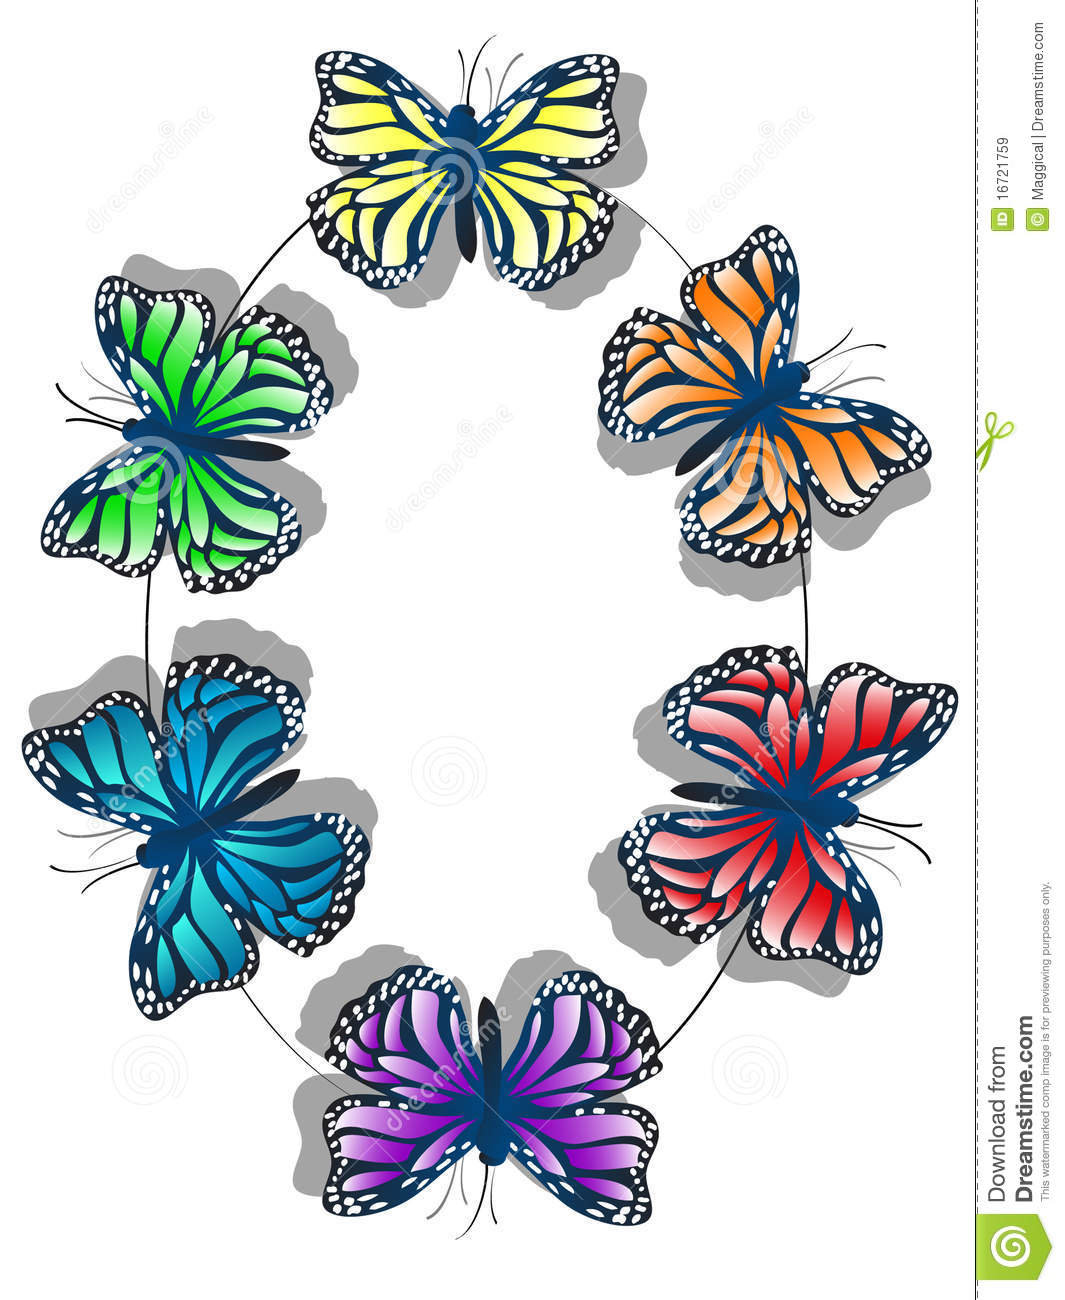 Butterfly Color Wheel Royalty Free Stock Images - Image ...